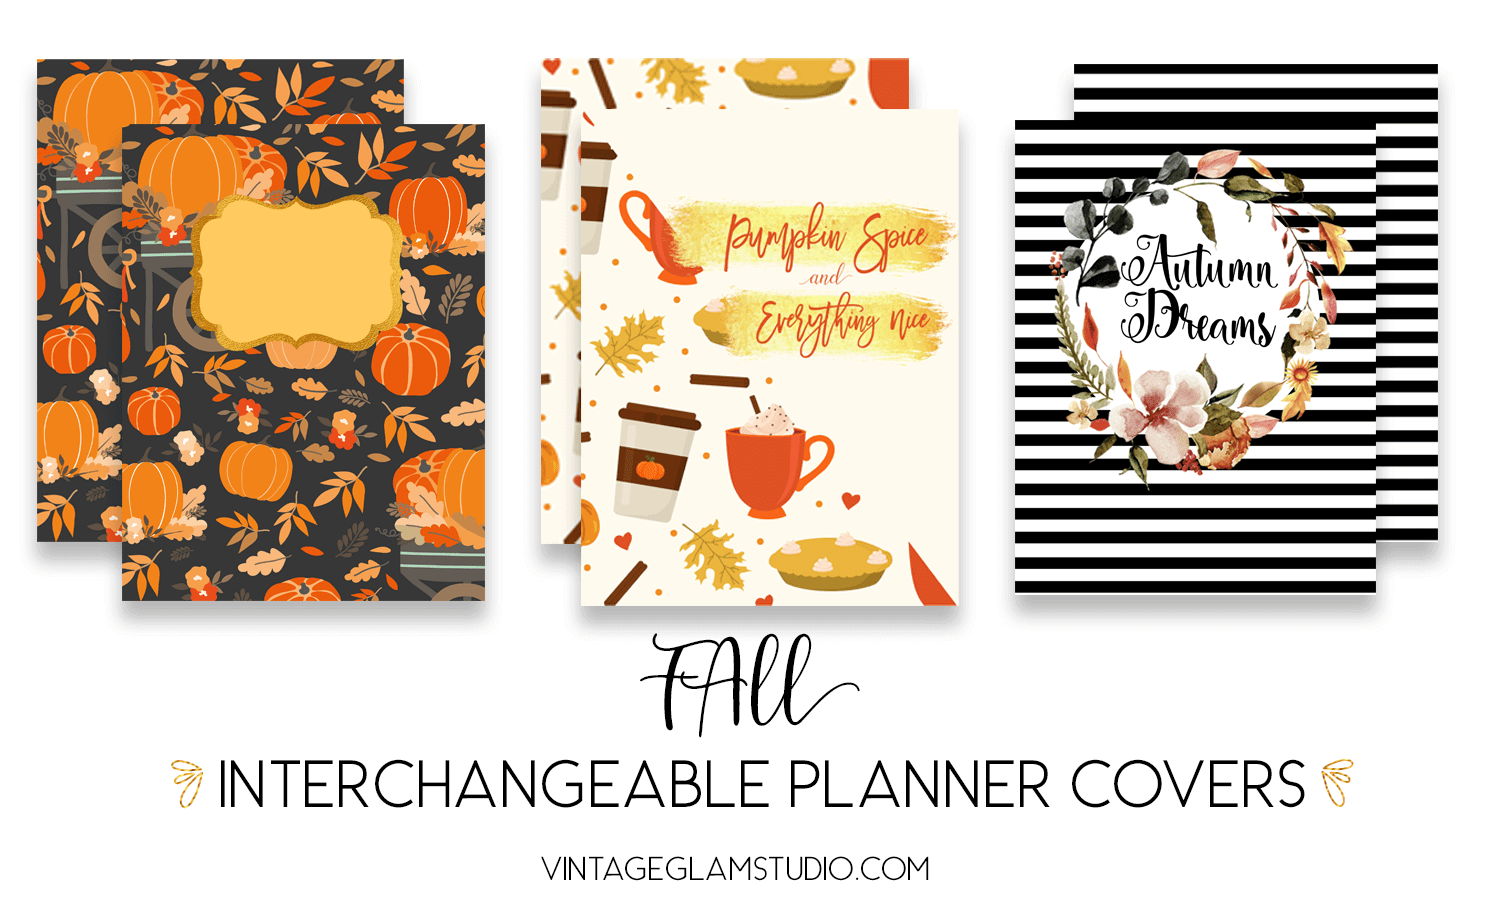 interchangeable planner covers